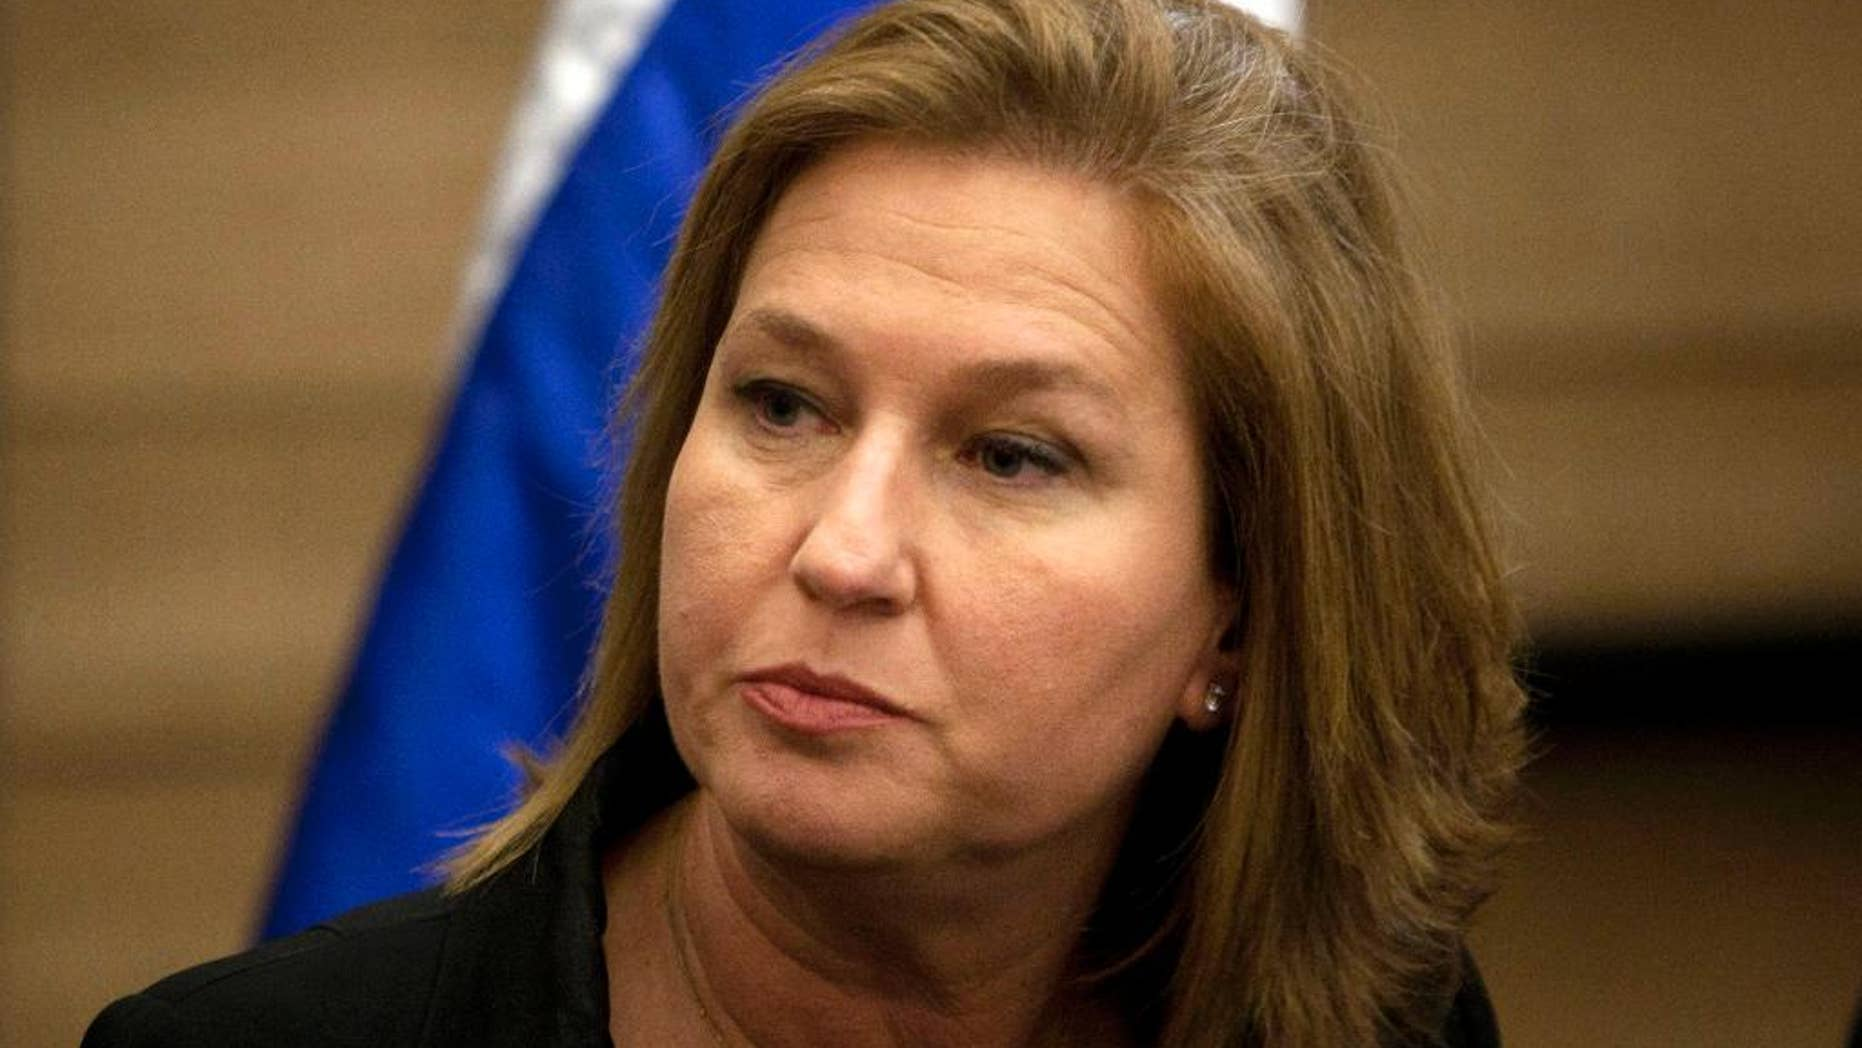 "FILE - In this Wednesday, Nov. 30, 2011 file photo, former Israeli Foreign Minister Tzipi Livni attends a news conference at the Knesset, Israel's parliament, in Jerusalem. Israel's opposition Labor party is joining forces with a former government partner in a bid to unseat Prime Minister Benjamin Netanyahu in the country's coming elections. Labor leader Isaac Herzog announced the alliance with Livni of the Hatnuah party at a press conference on Wednesday, Dec. 10, 2014, featuring the slogan ""Together We Win."" (AP Photo/Sebastian Scheiner, File)"